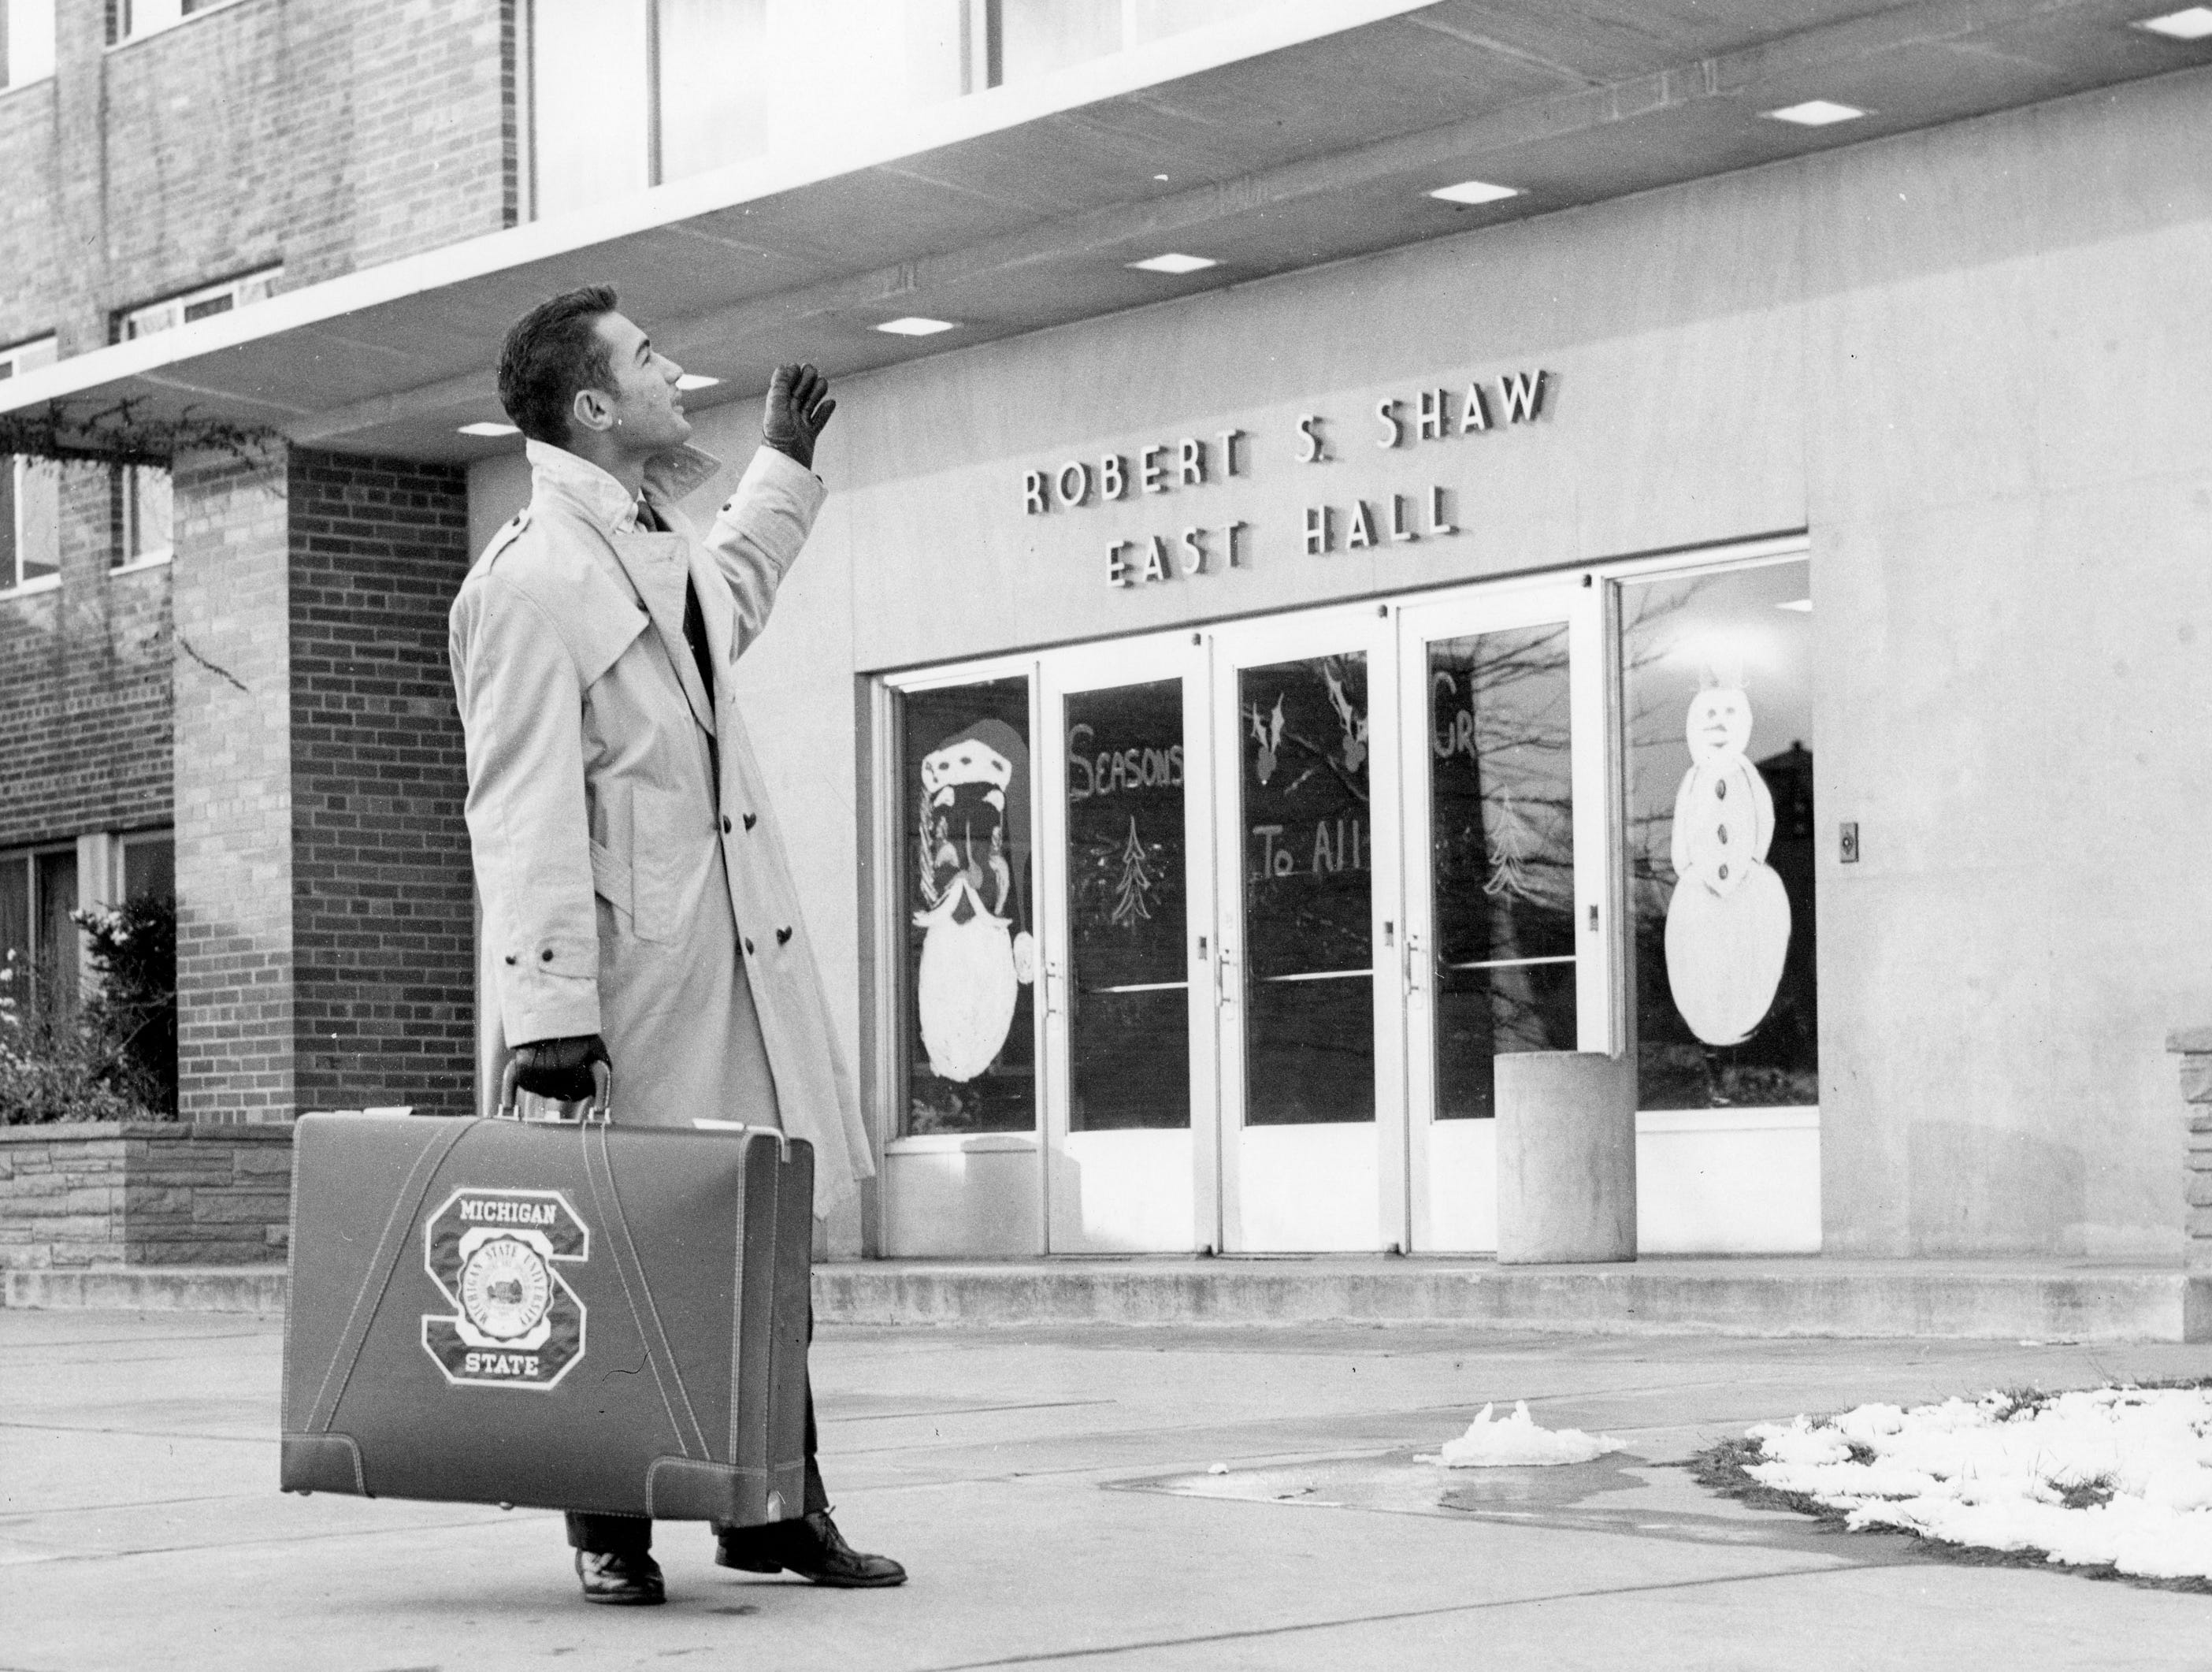 A male student, carrying a suitcase with a MSU sticker on it, waves outside to Shaw Hall. The windows of Shaw Hall are decorated for Christmas, date unknown.